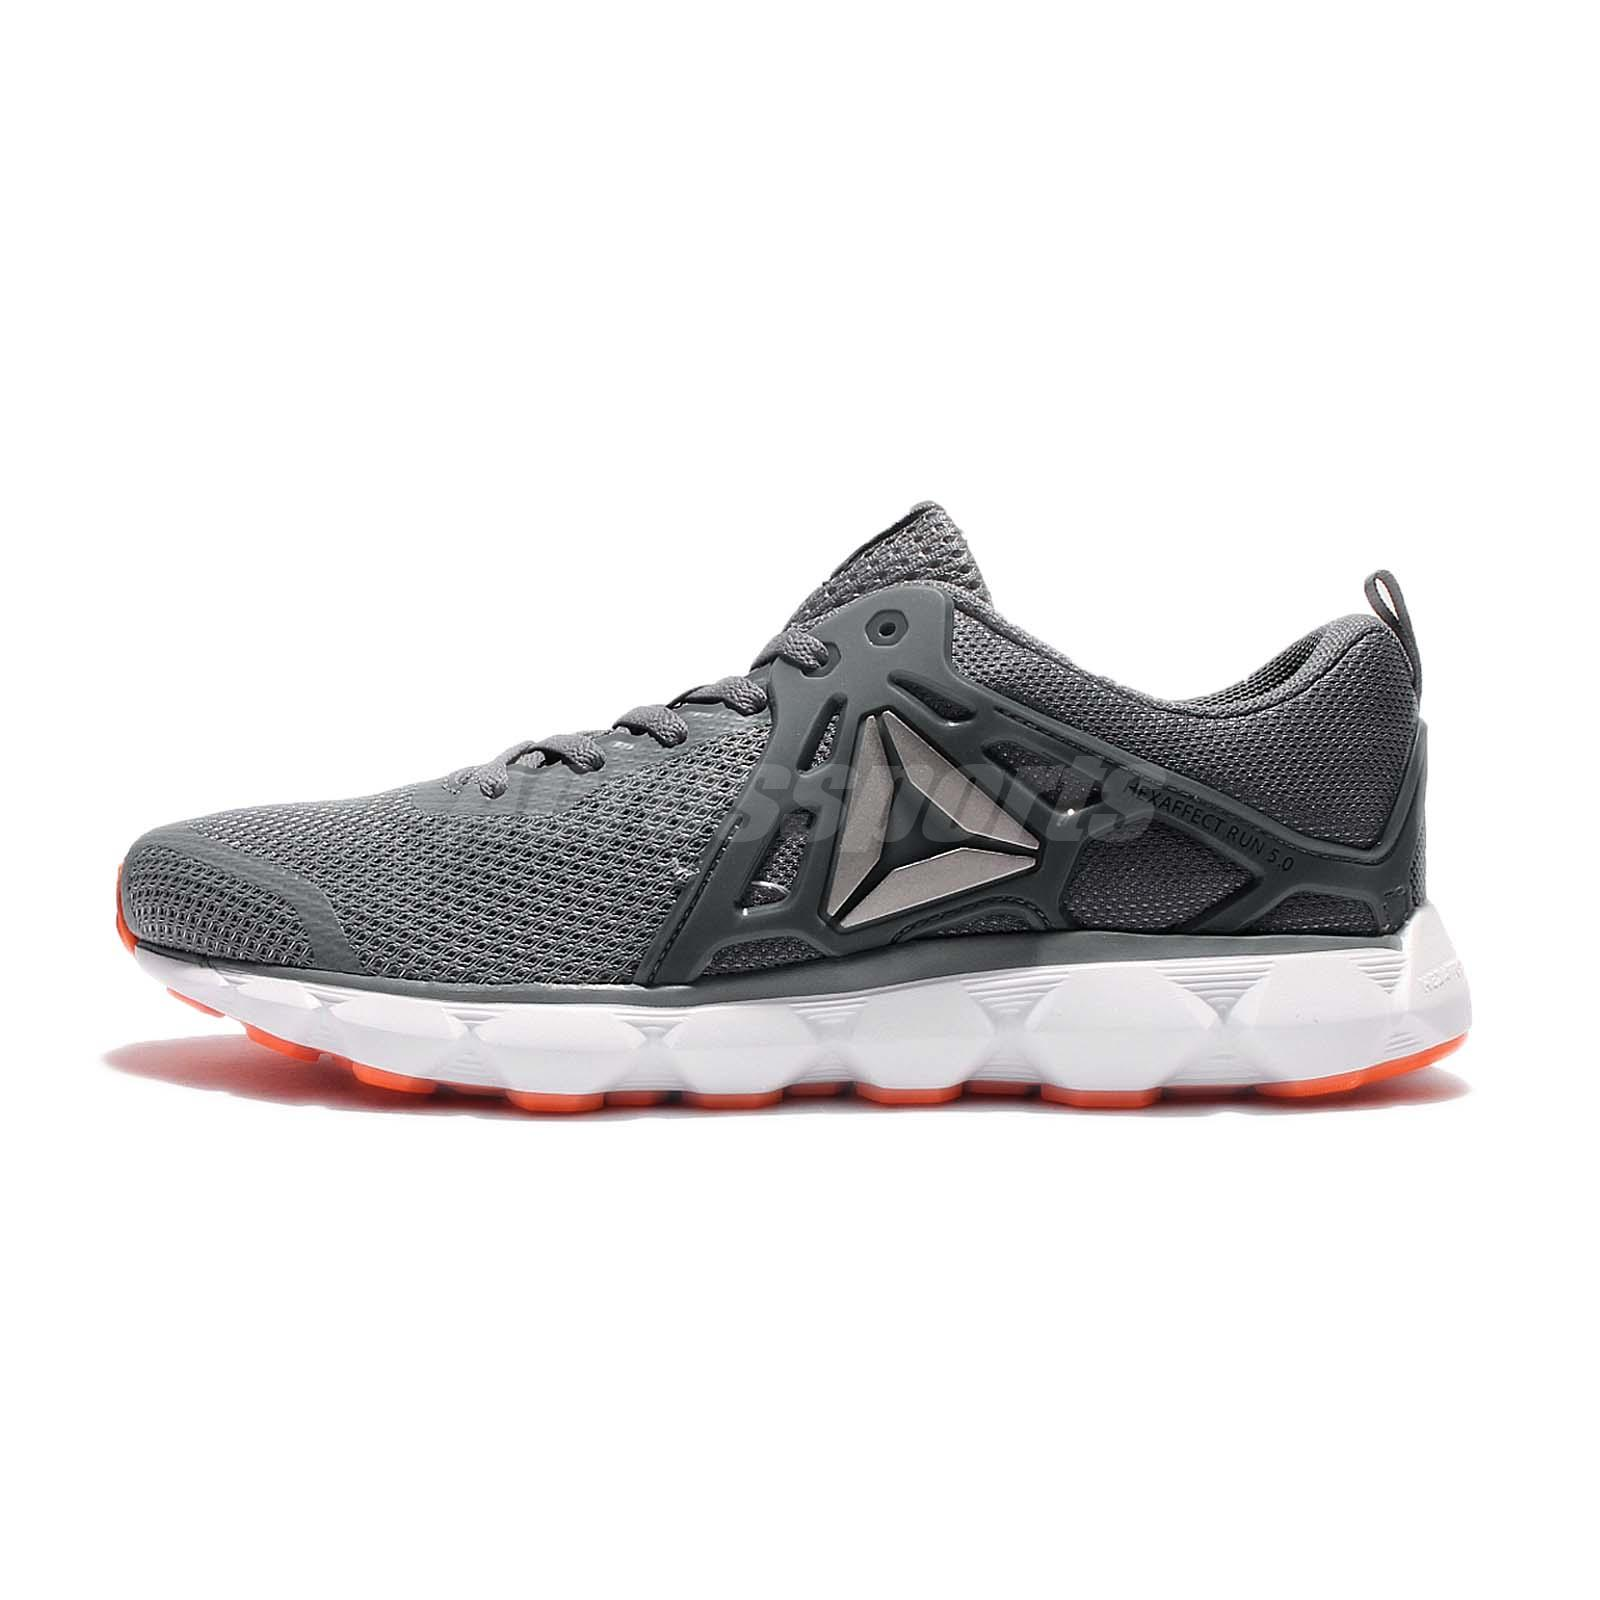 ff7bdd29066e7a Reebok Hexaffect Run 5.0 MTM Grey Orange White Men Running Shoes Sneakers  BD4698